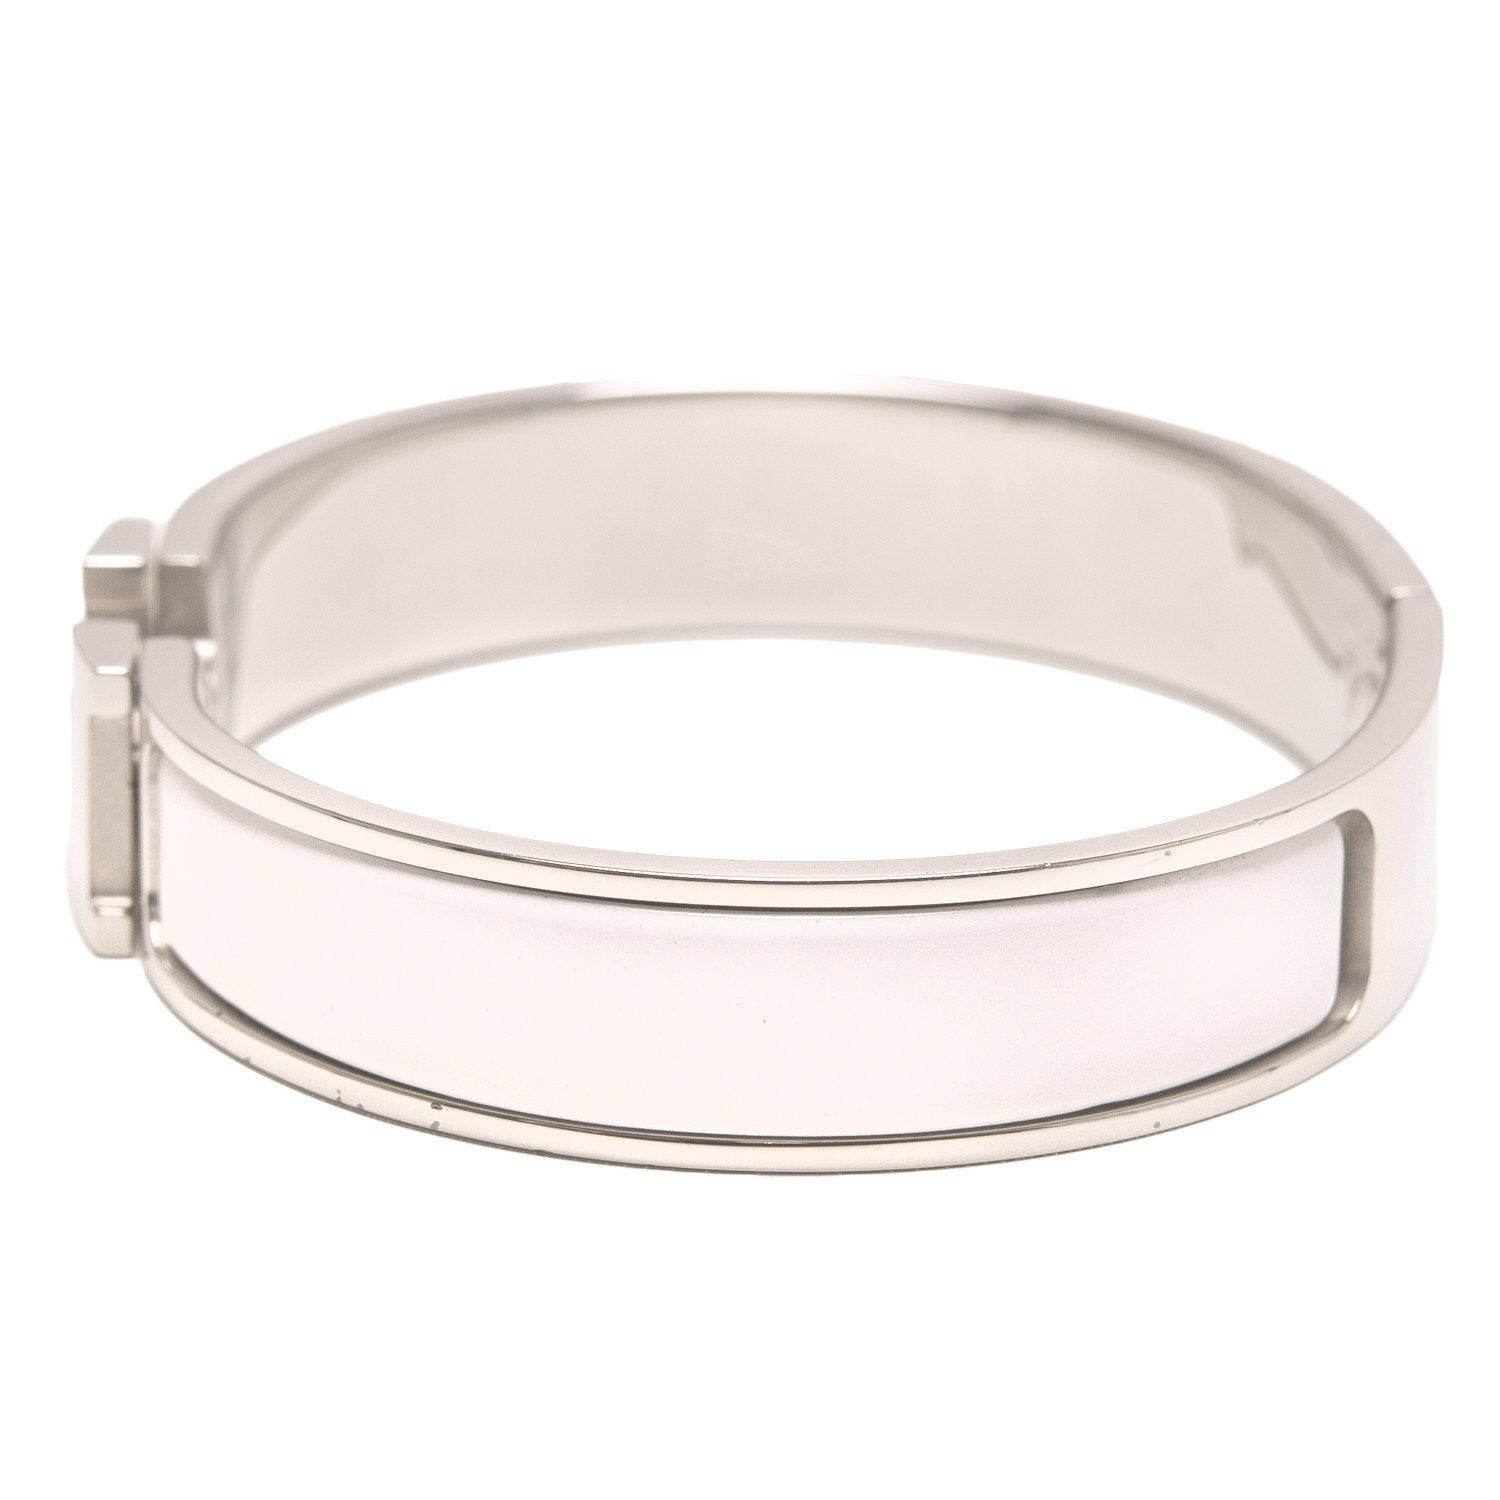 Hermes White Clic Clac H Narrow Enamel Bracelet Pm Accessories